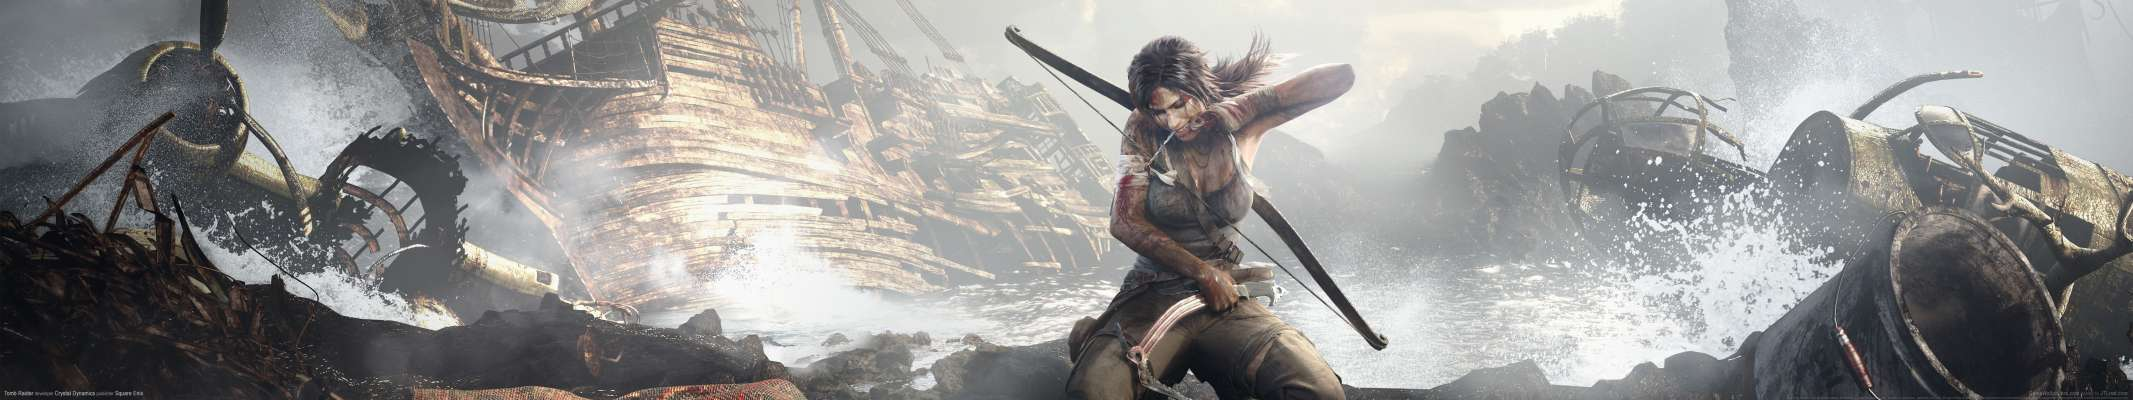 Tomb Raider triple screen fondo de escritorio